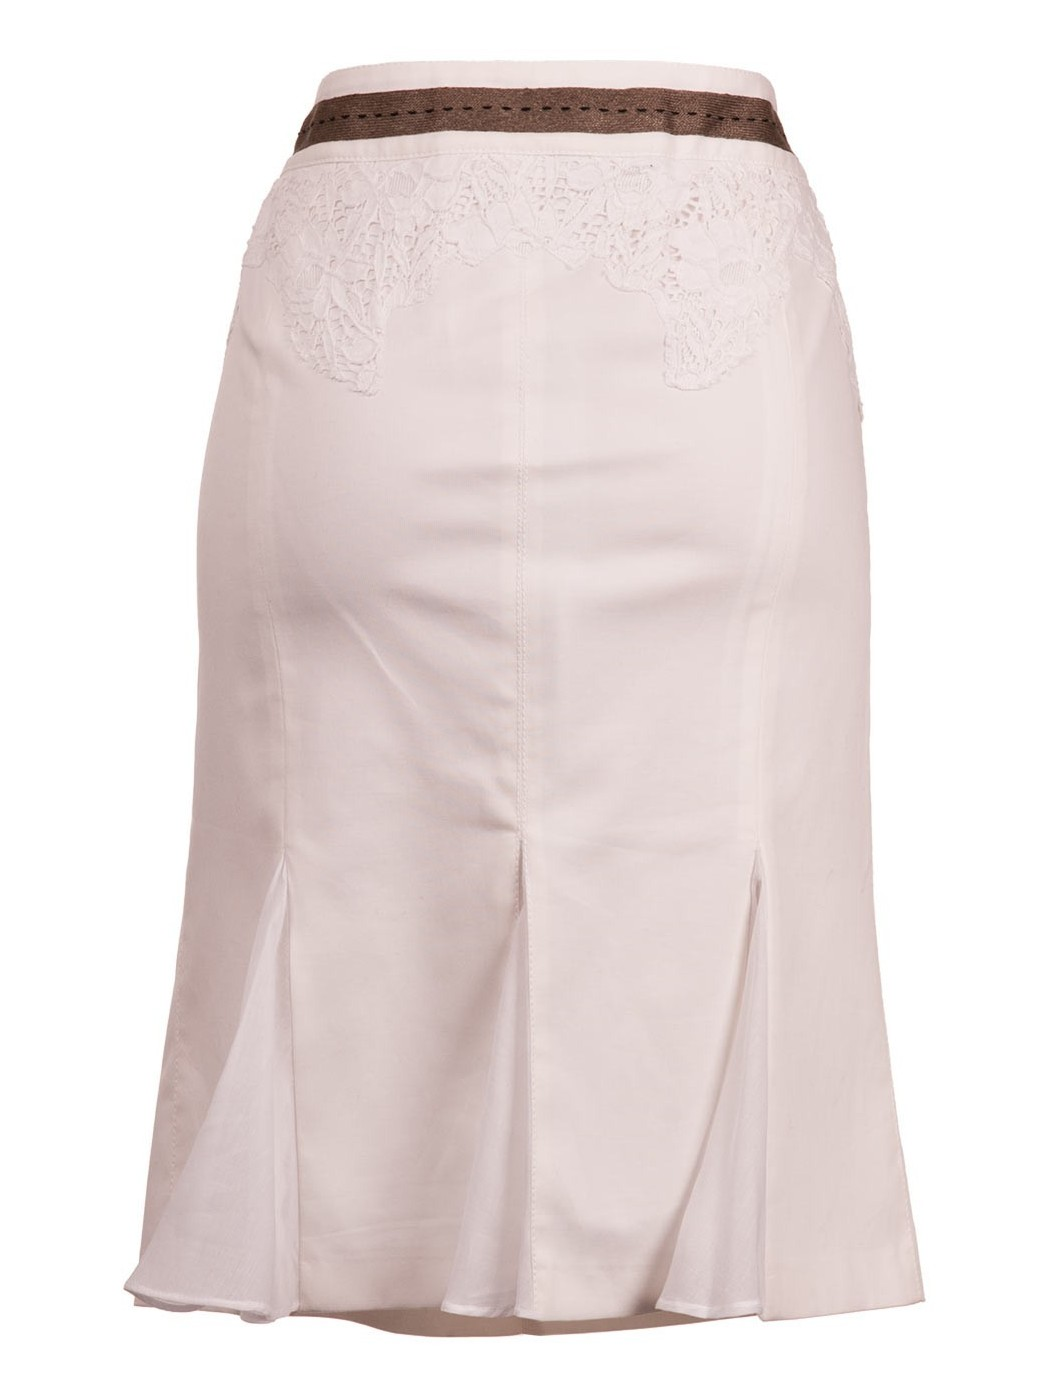 Skirt with lace inserts